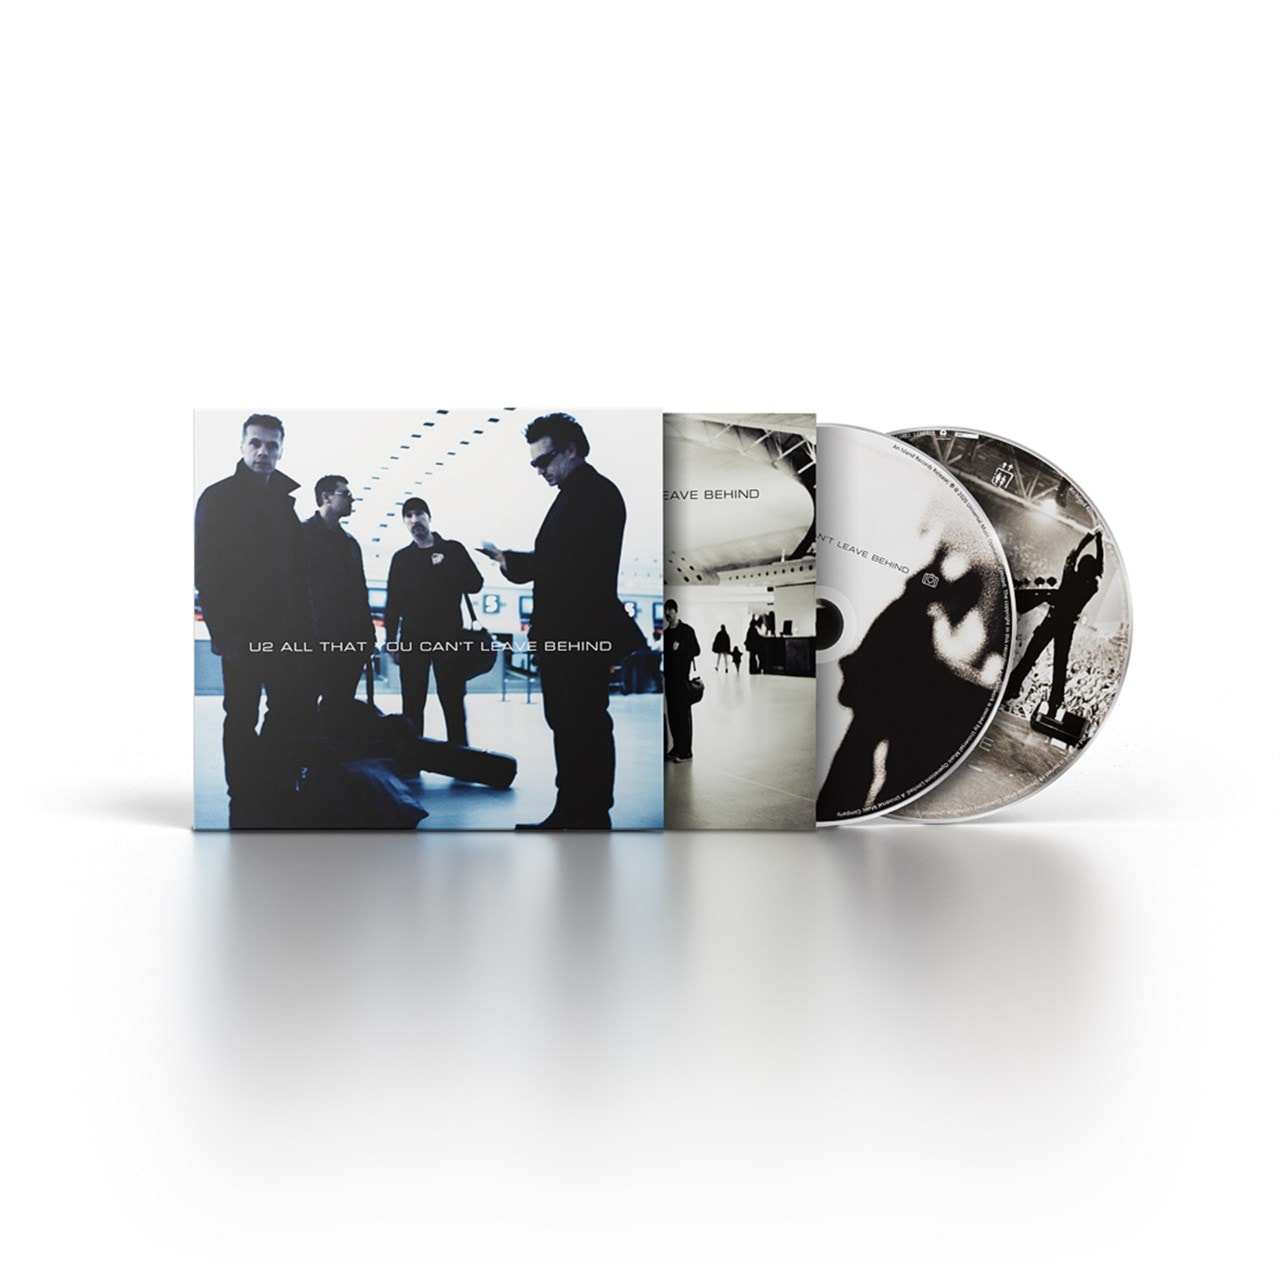 All That You Can't Leave Behind - 20th Anniversary - Deluxe Edition CD Set - 1